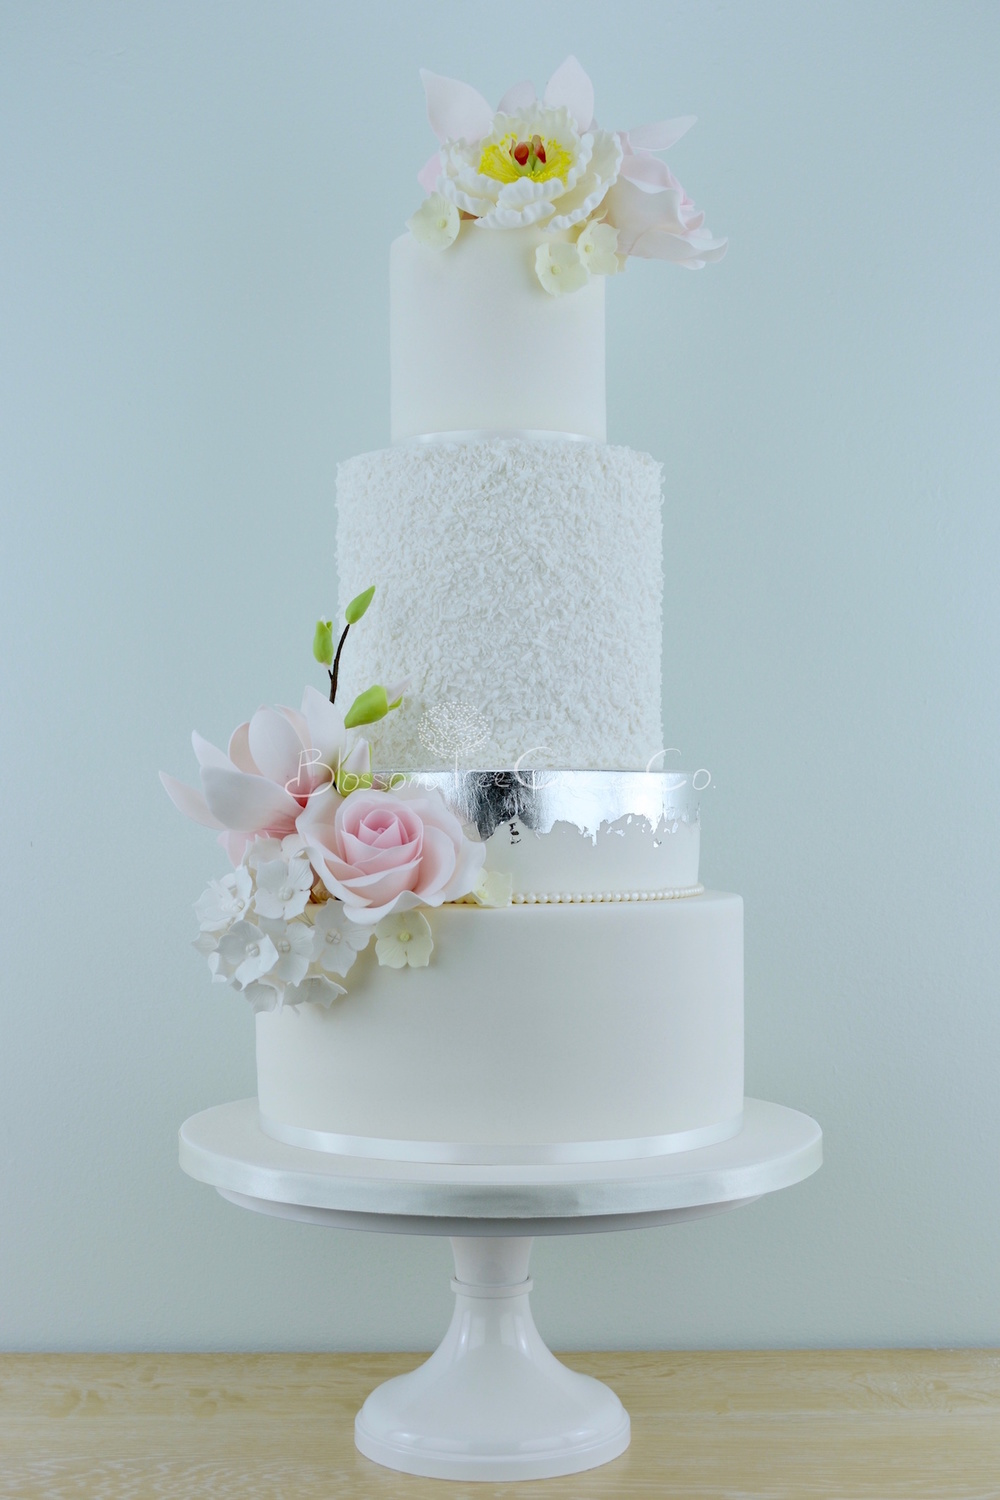 White and silver with pink flowers wedding cake by Blossom Tree Cake Company Harrogate North Yorkshire